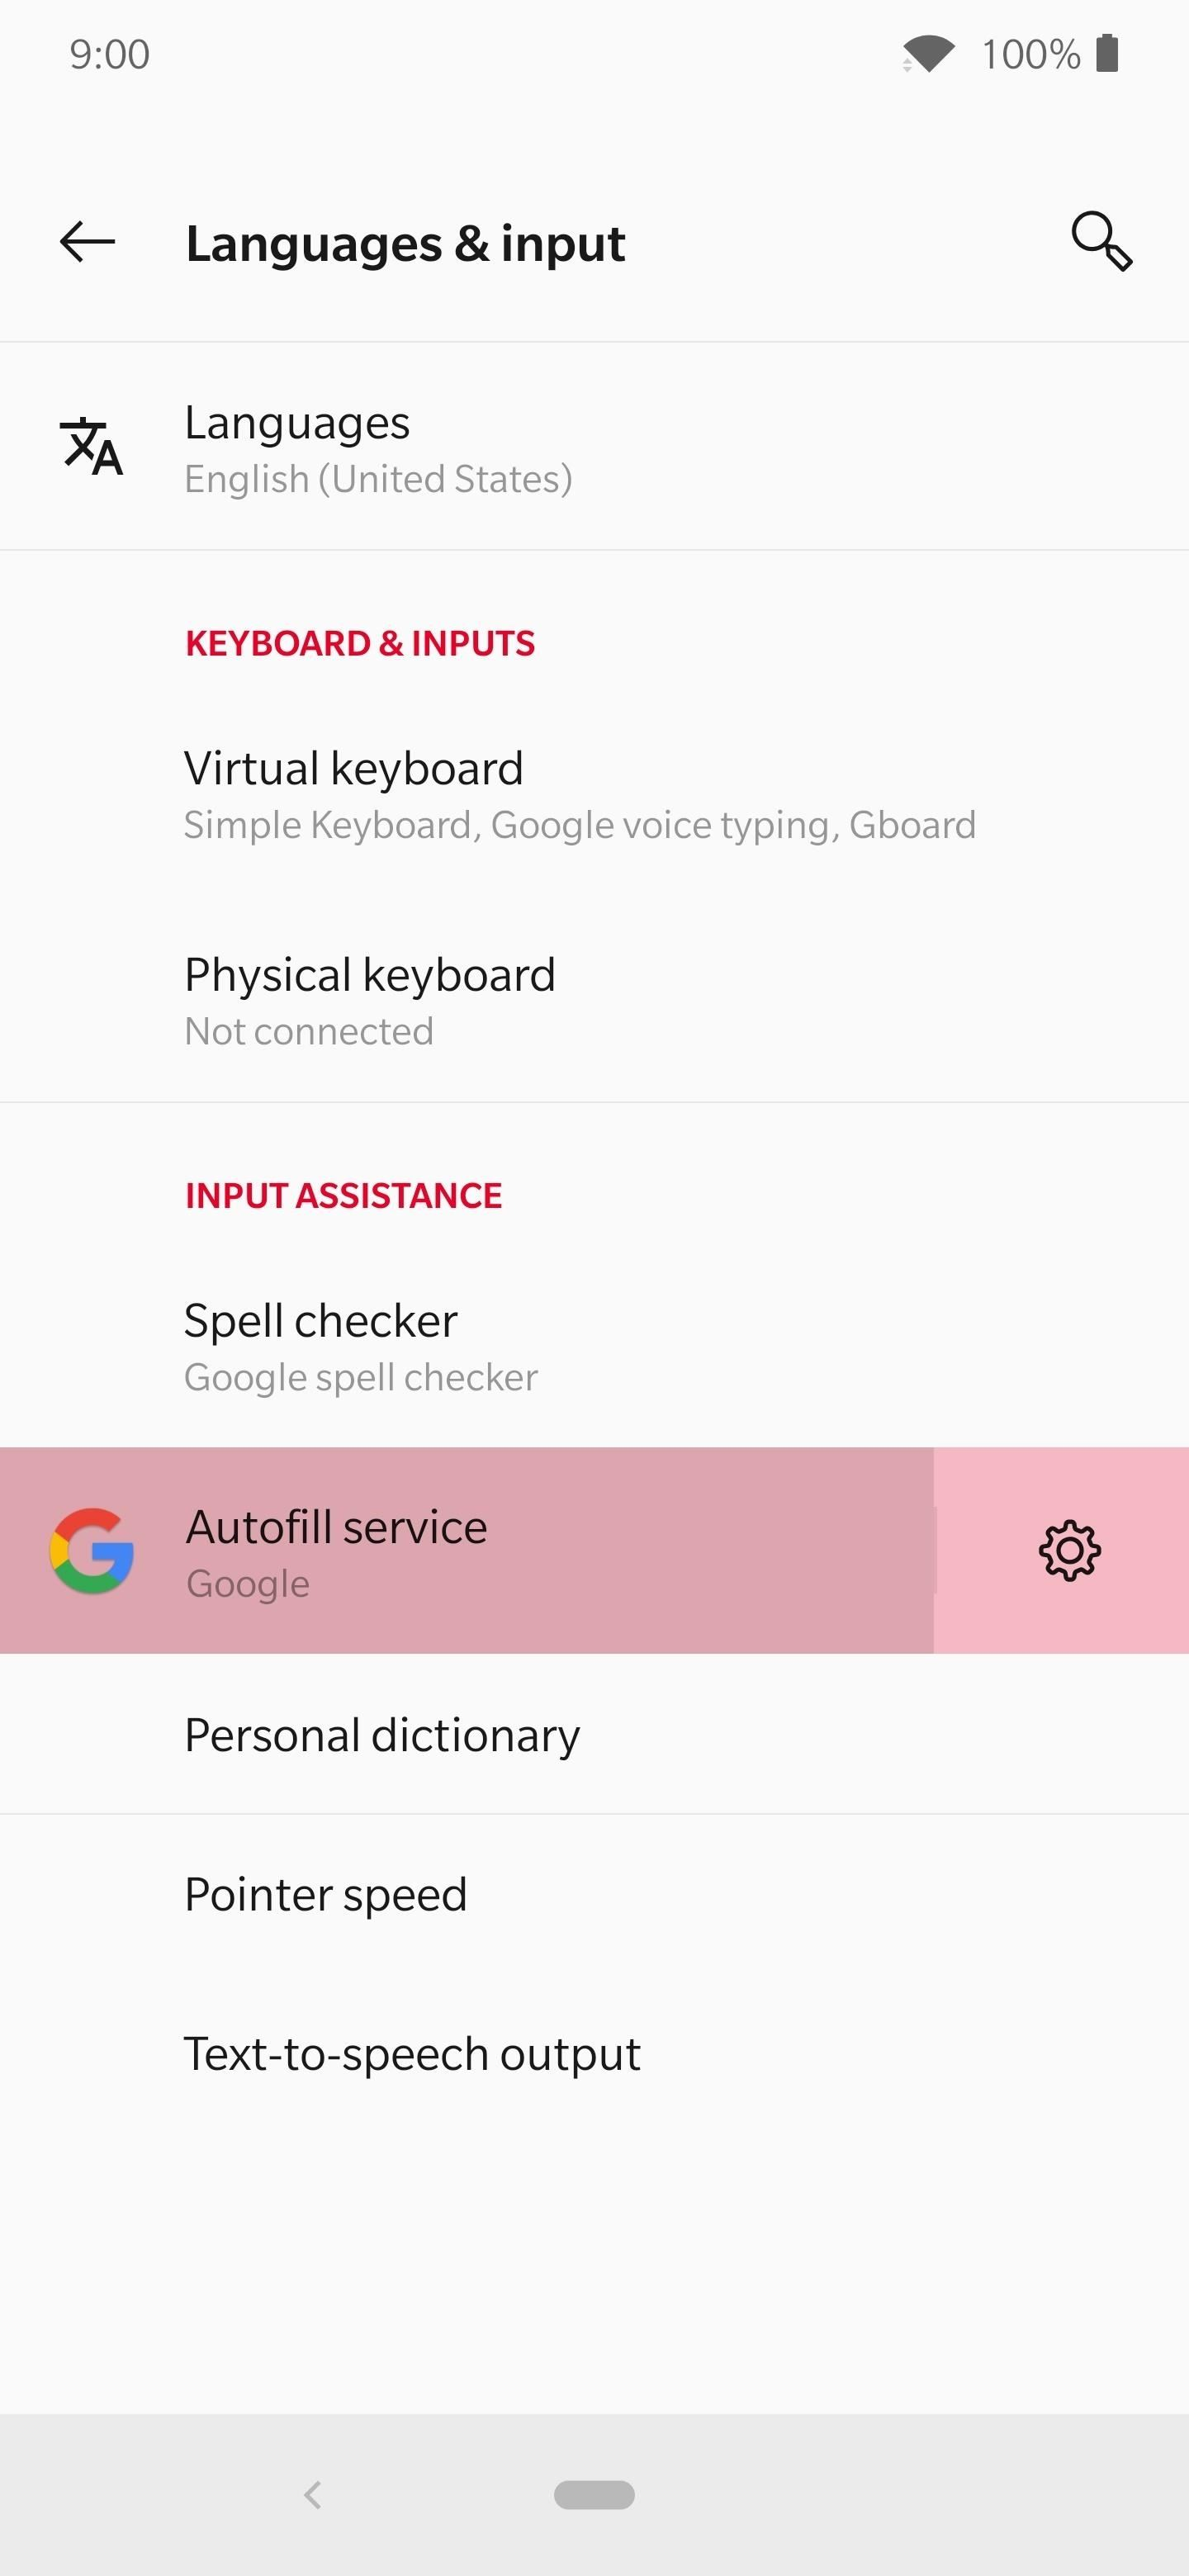 How to Use Your Saved Passwords from Google Chrome to Log into Android Apps